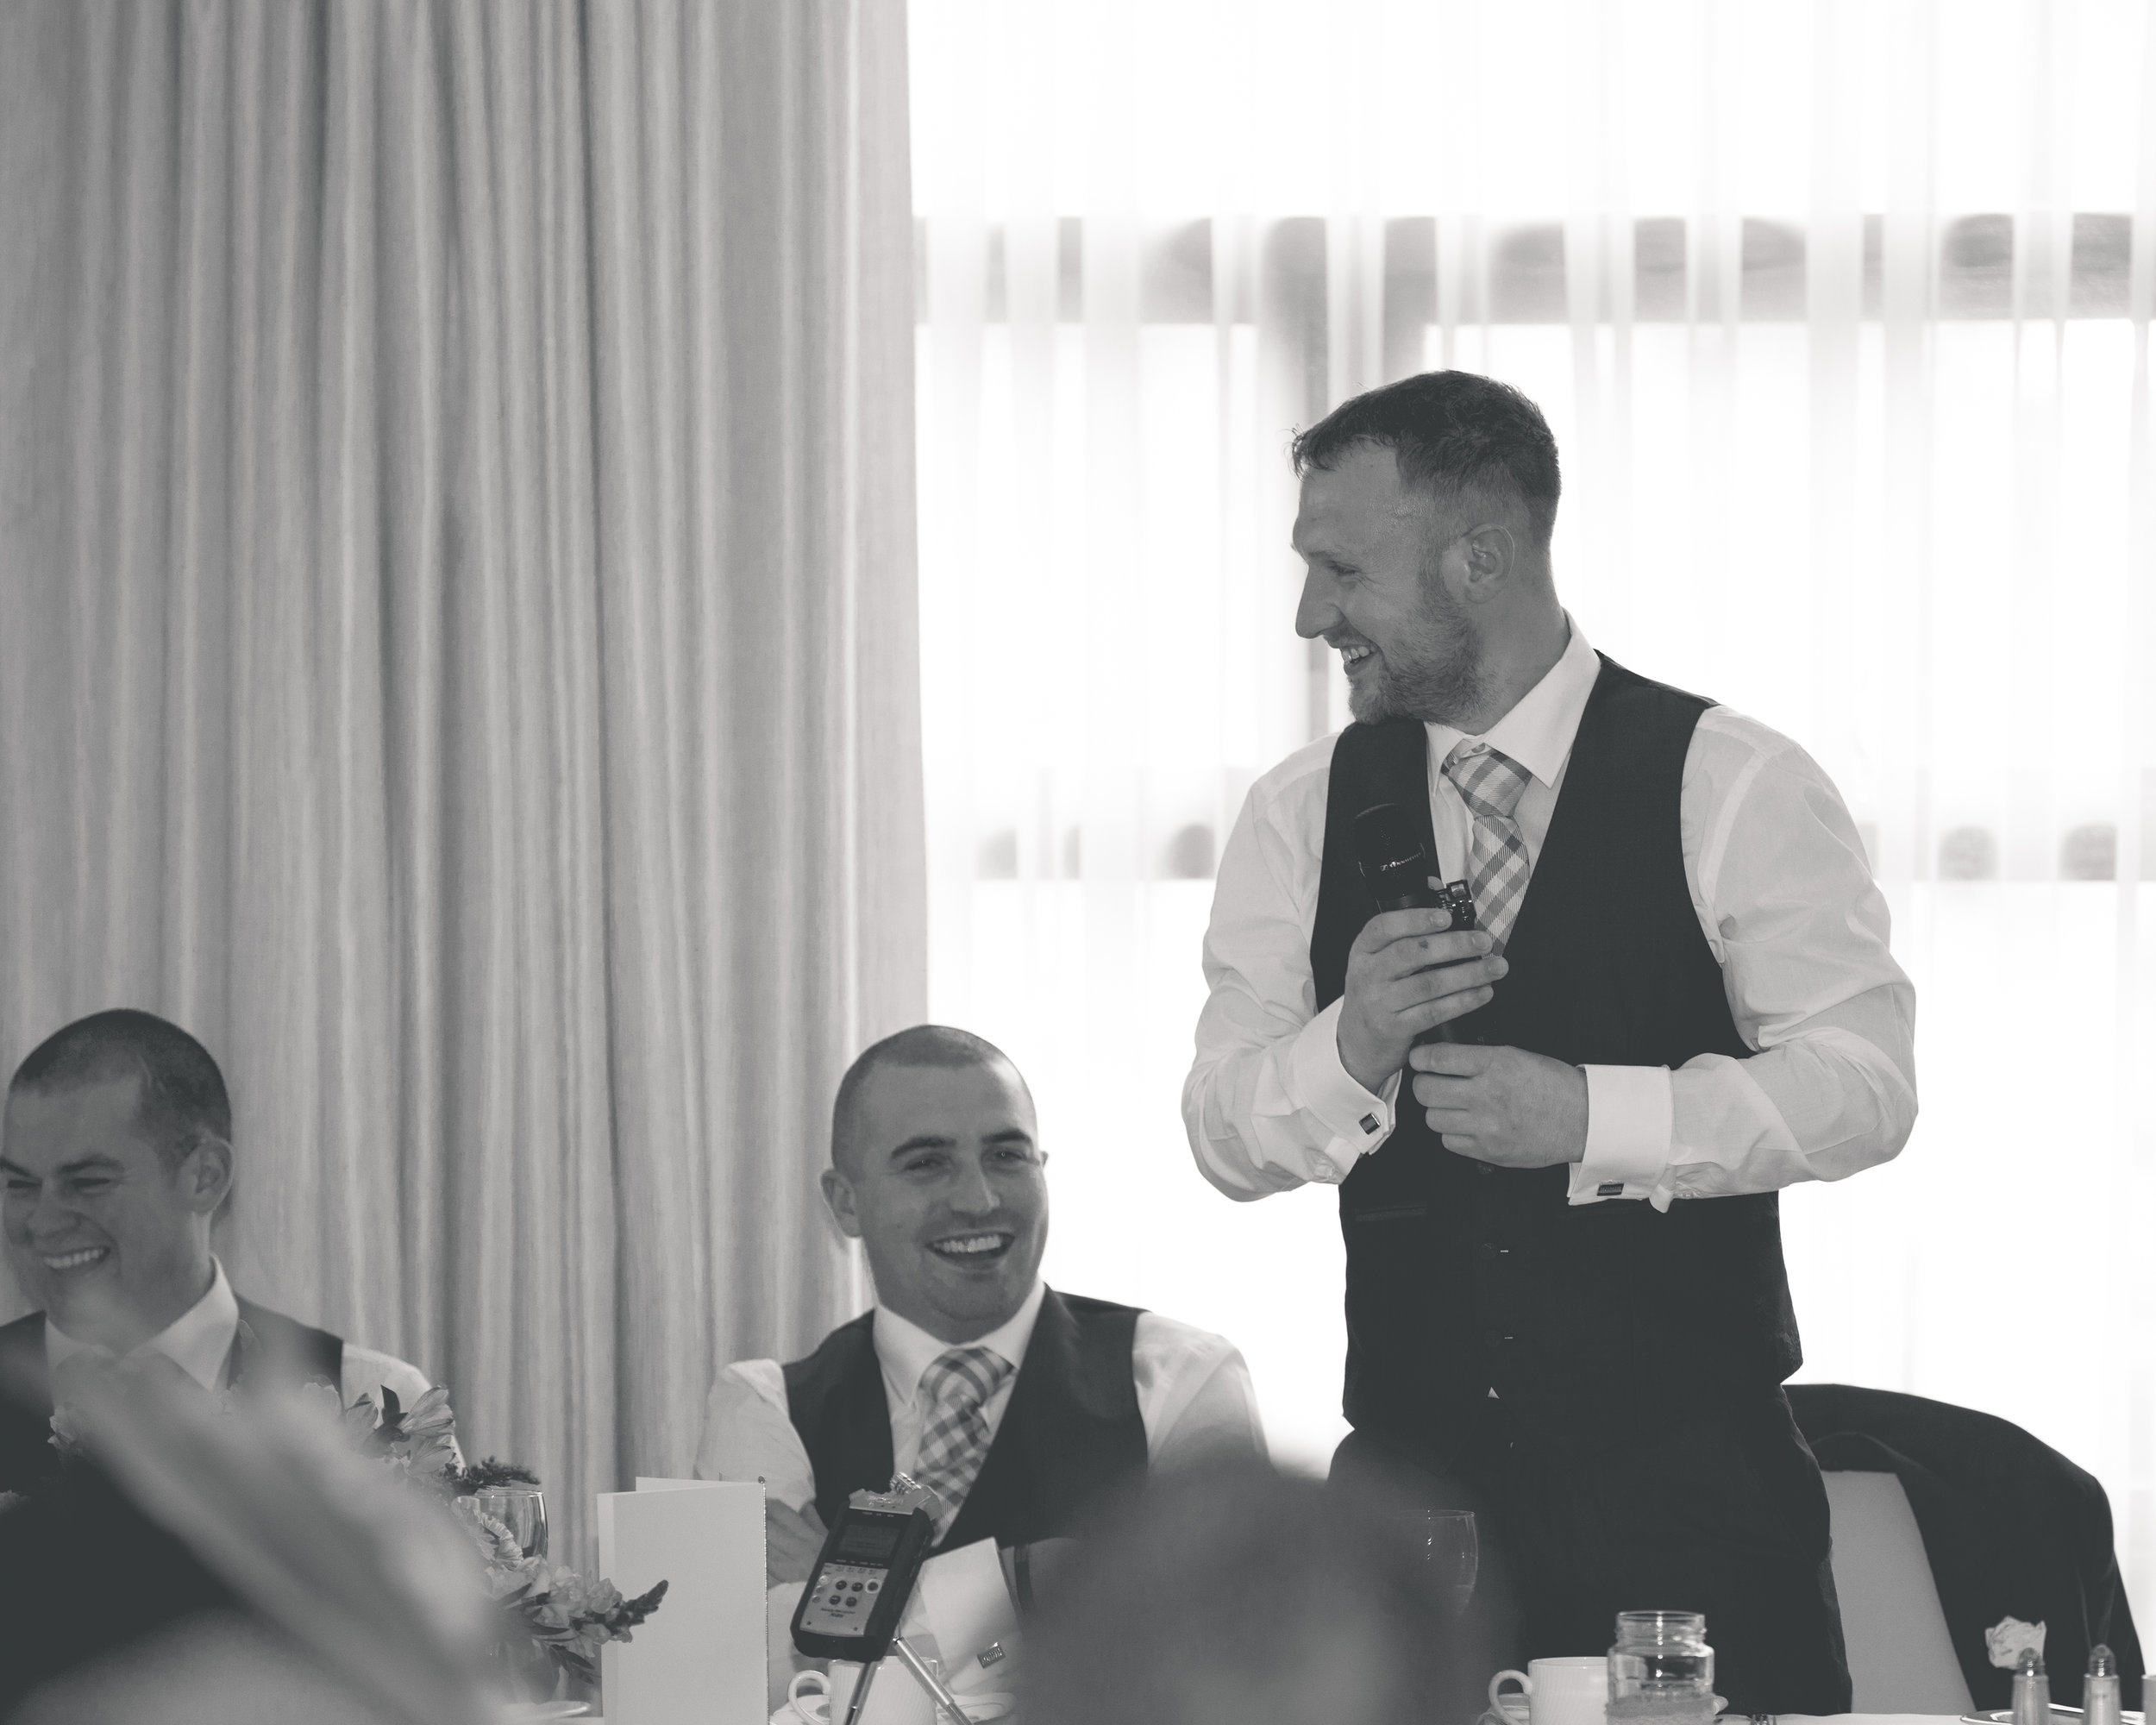 Antoinette & Stephen - Speeches | Brian McEwan Photography | Wedding Photographer Northern Ireland 88.jpg